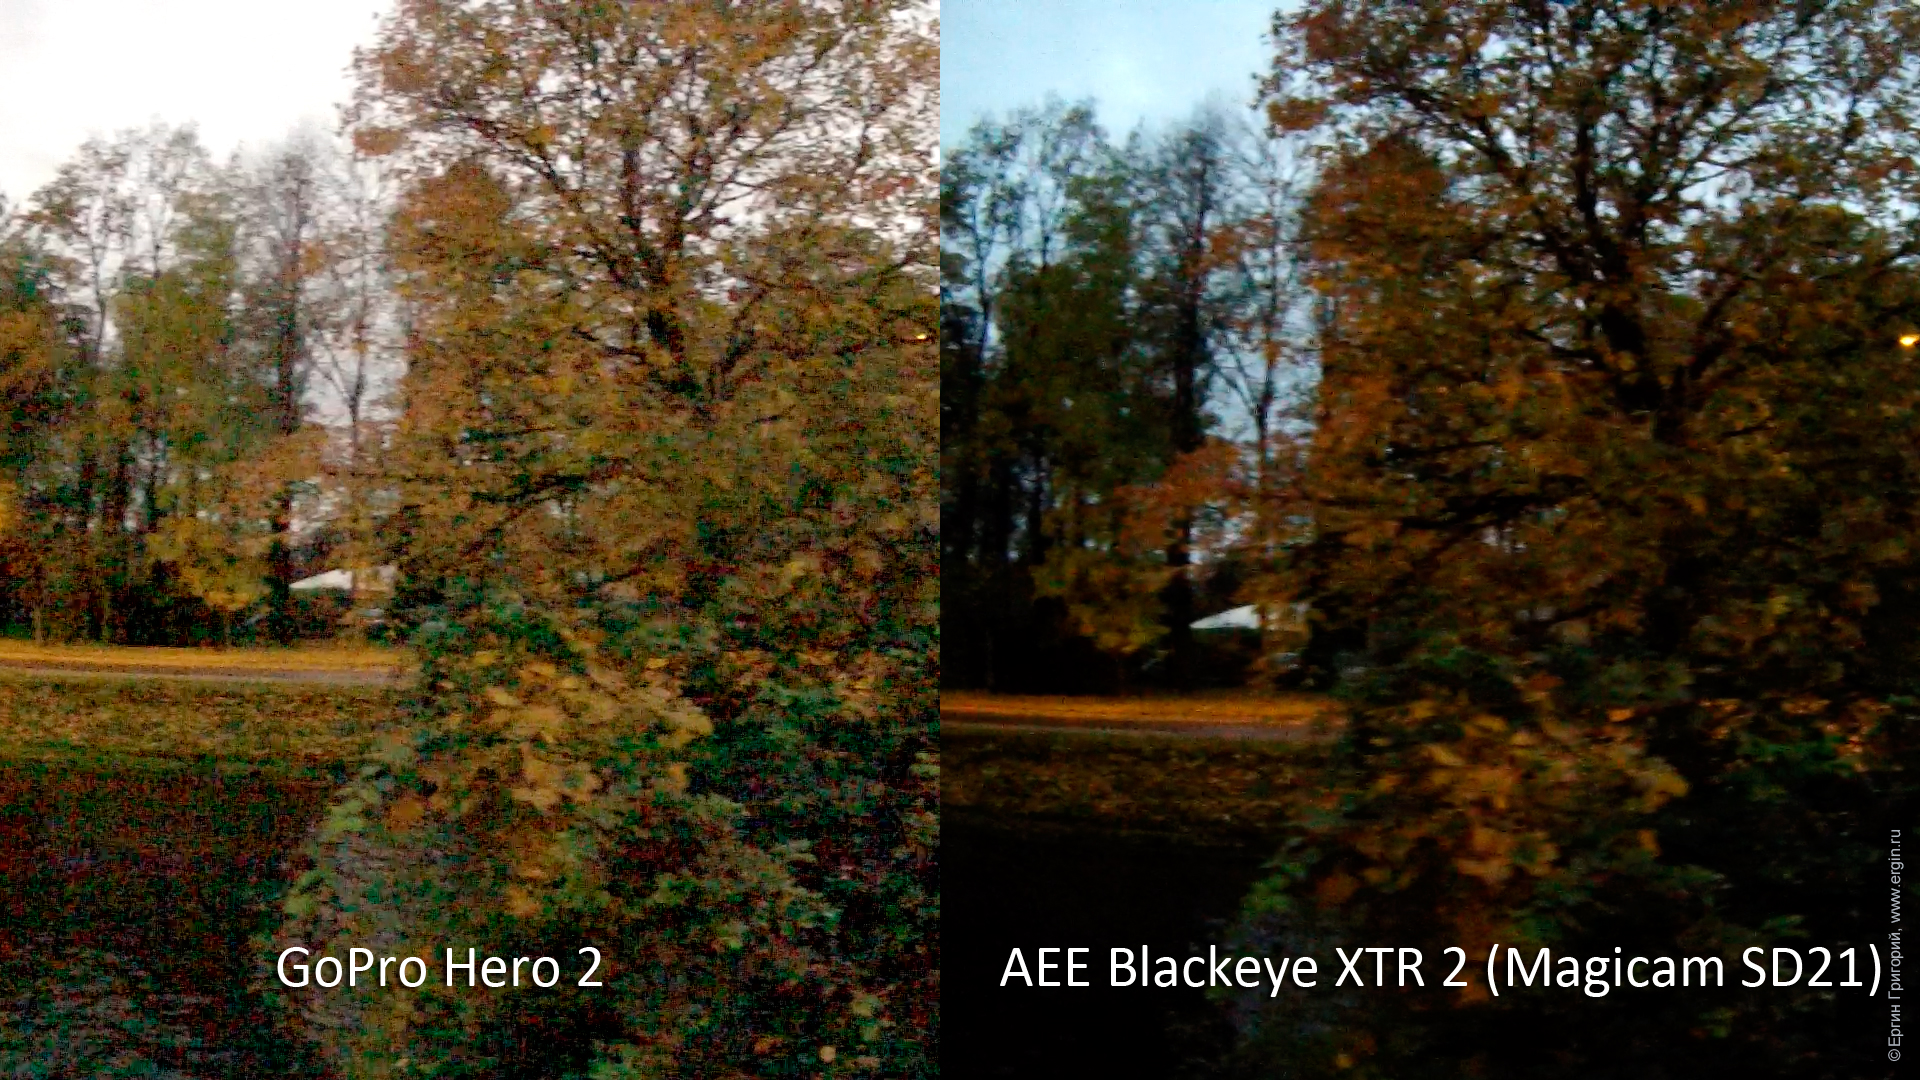 AEE Blackeye XTR 2 (AEE Magicam SD21) против GoPro Hero 2: съемка в сумерках